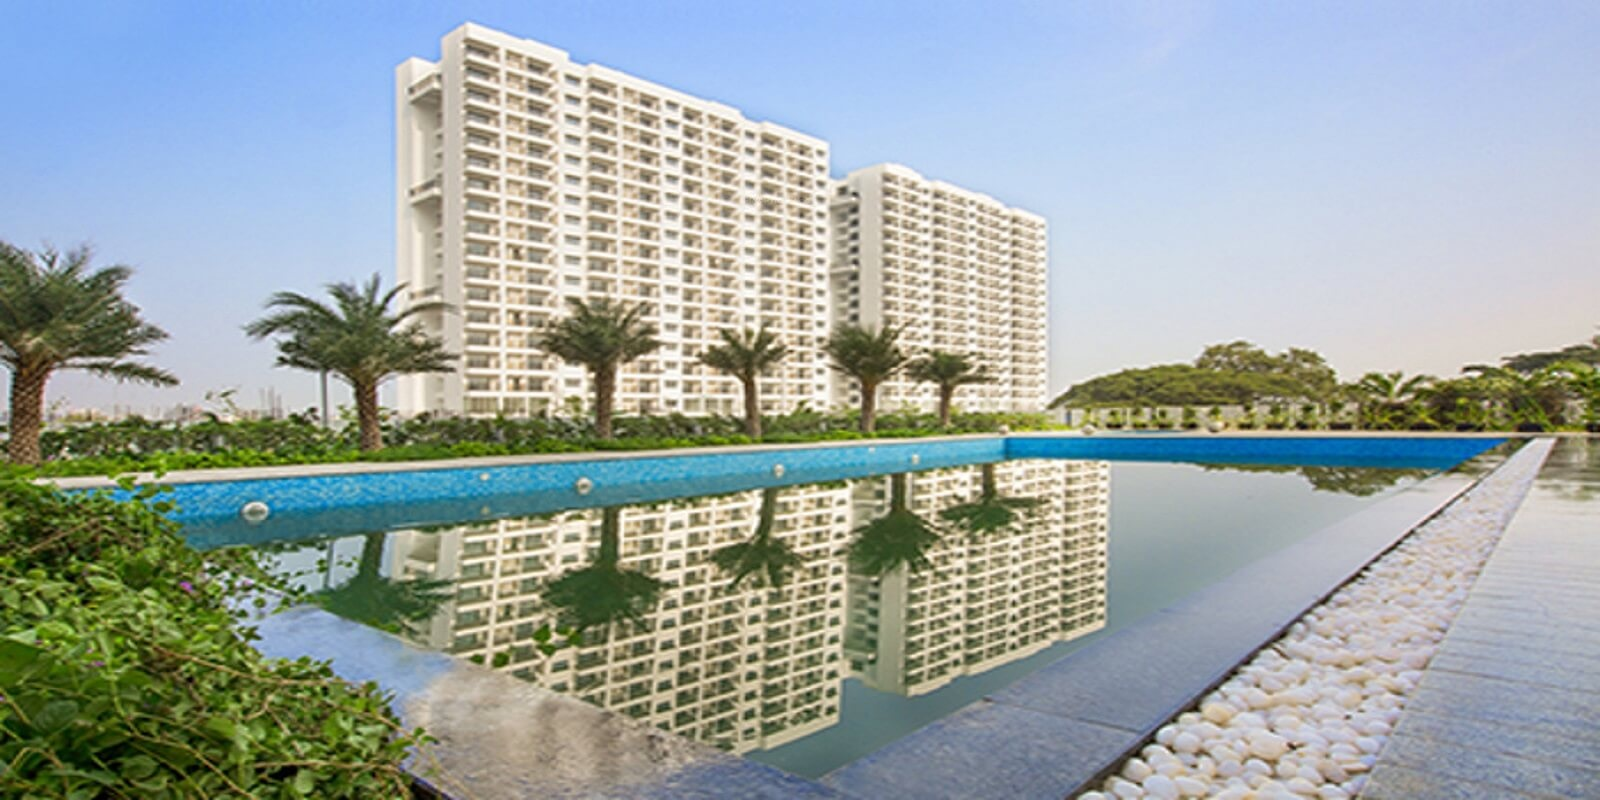 godrej palm grove project project large image1